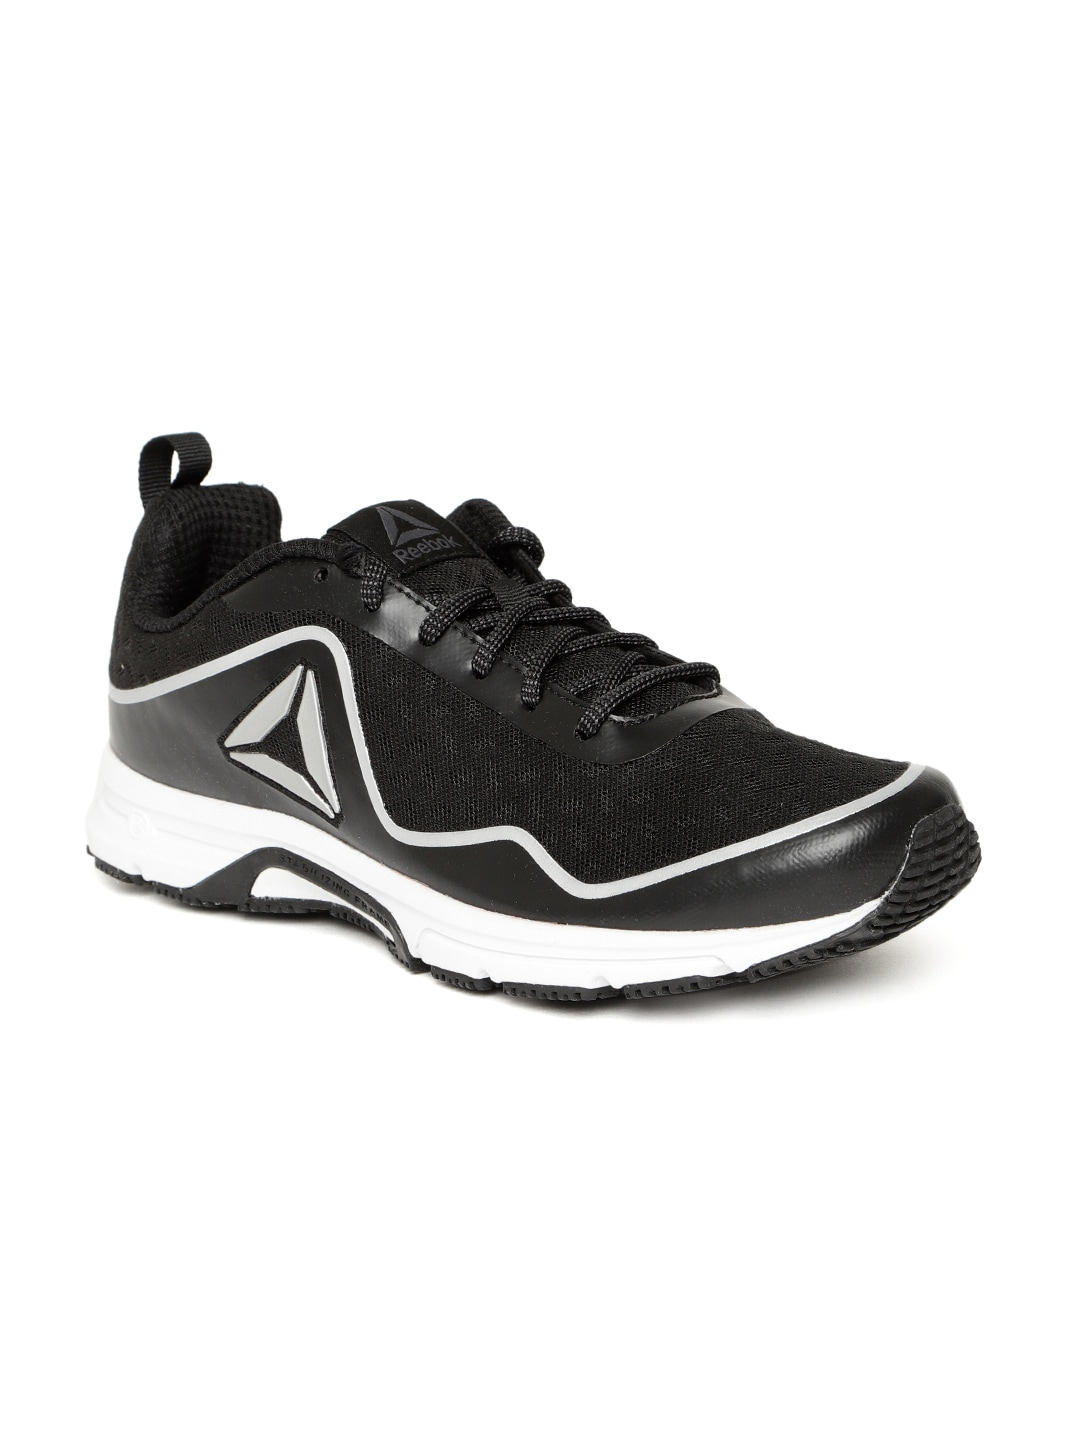 12a786c2ae96 Reebok Footwear - Buy Reebok Footwear Online in India